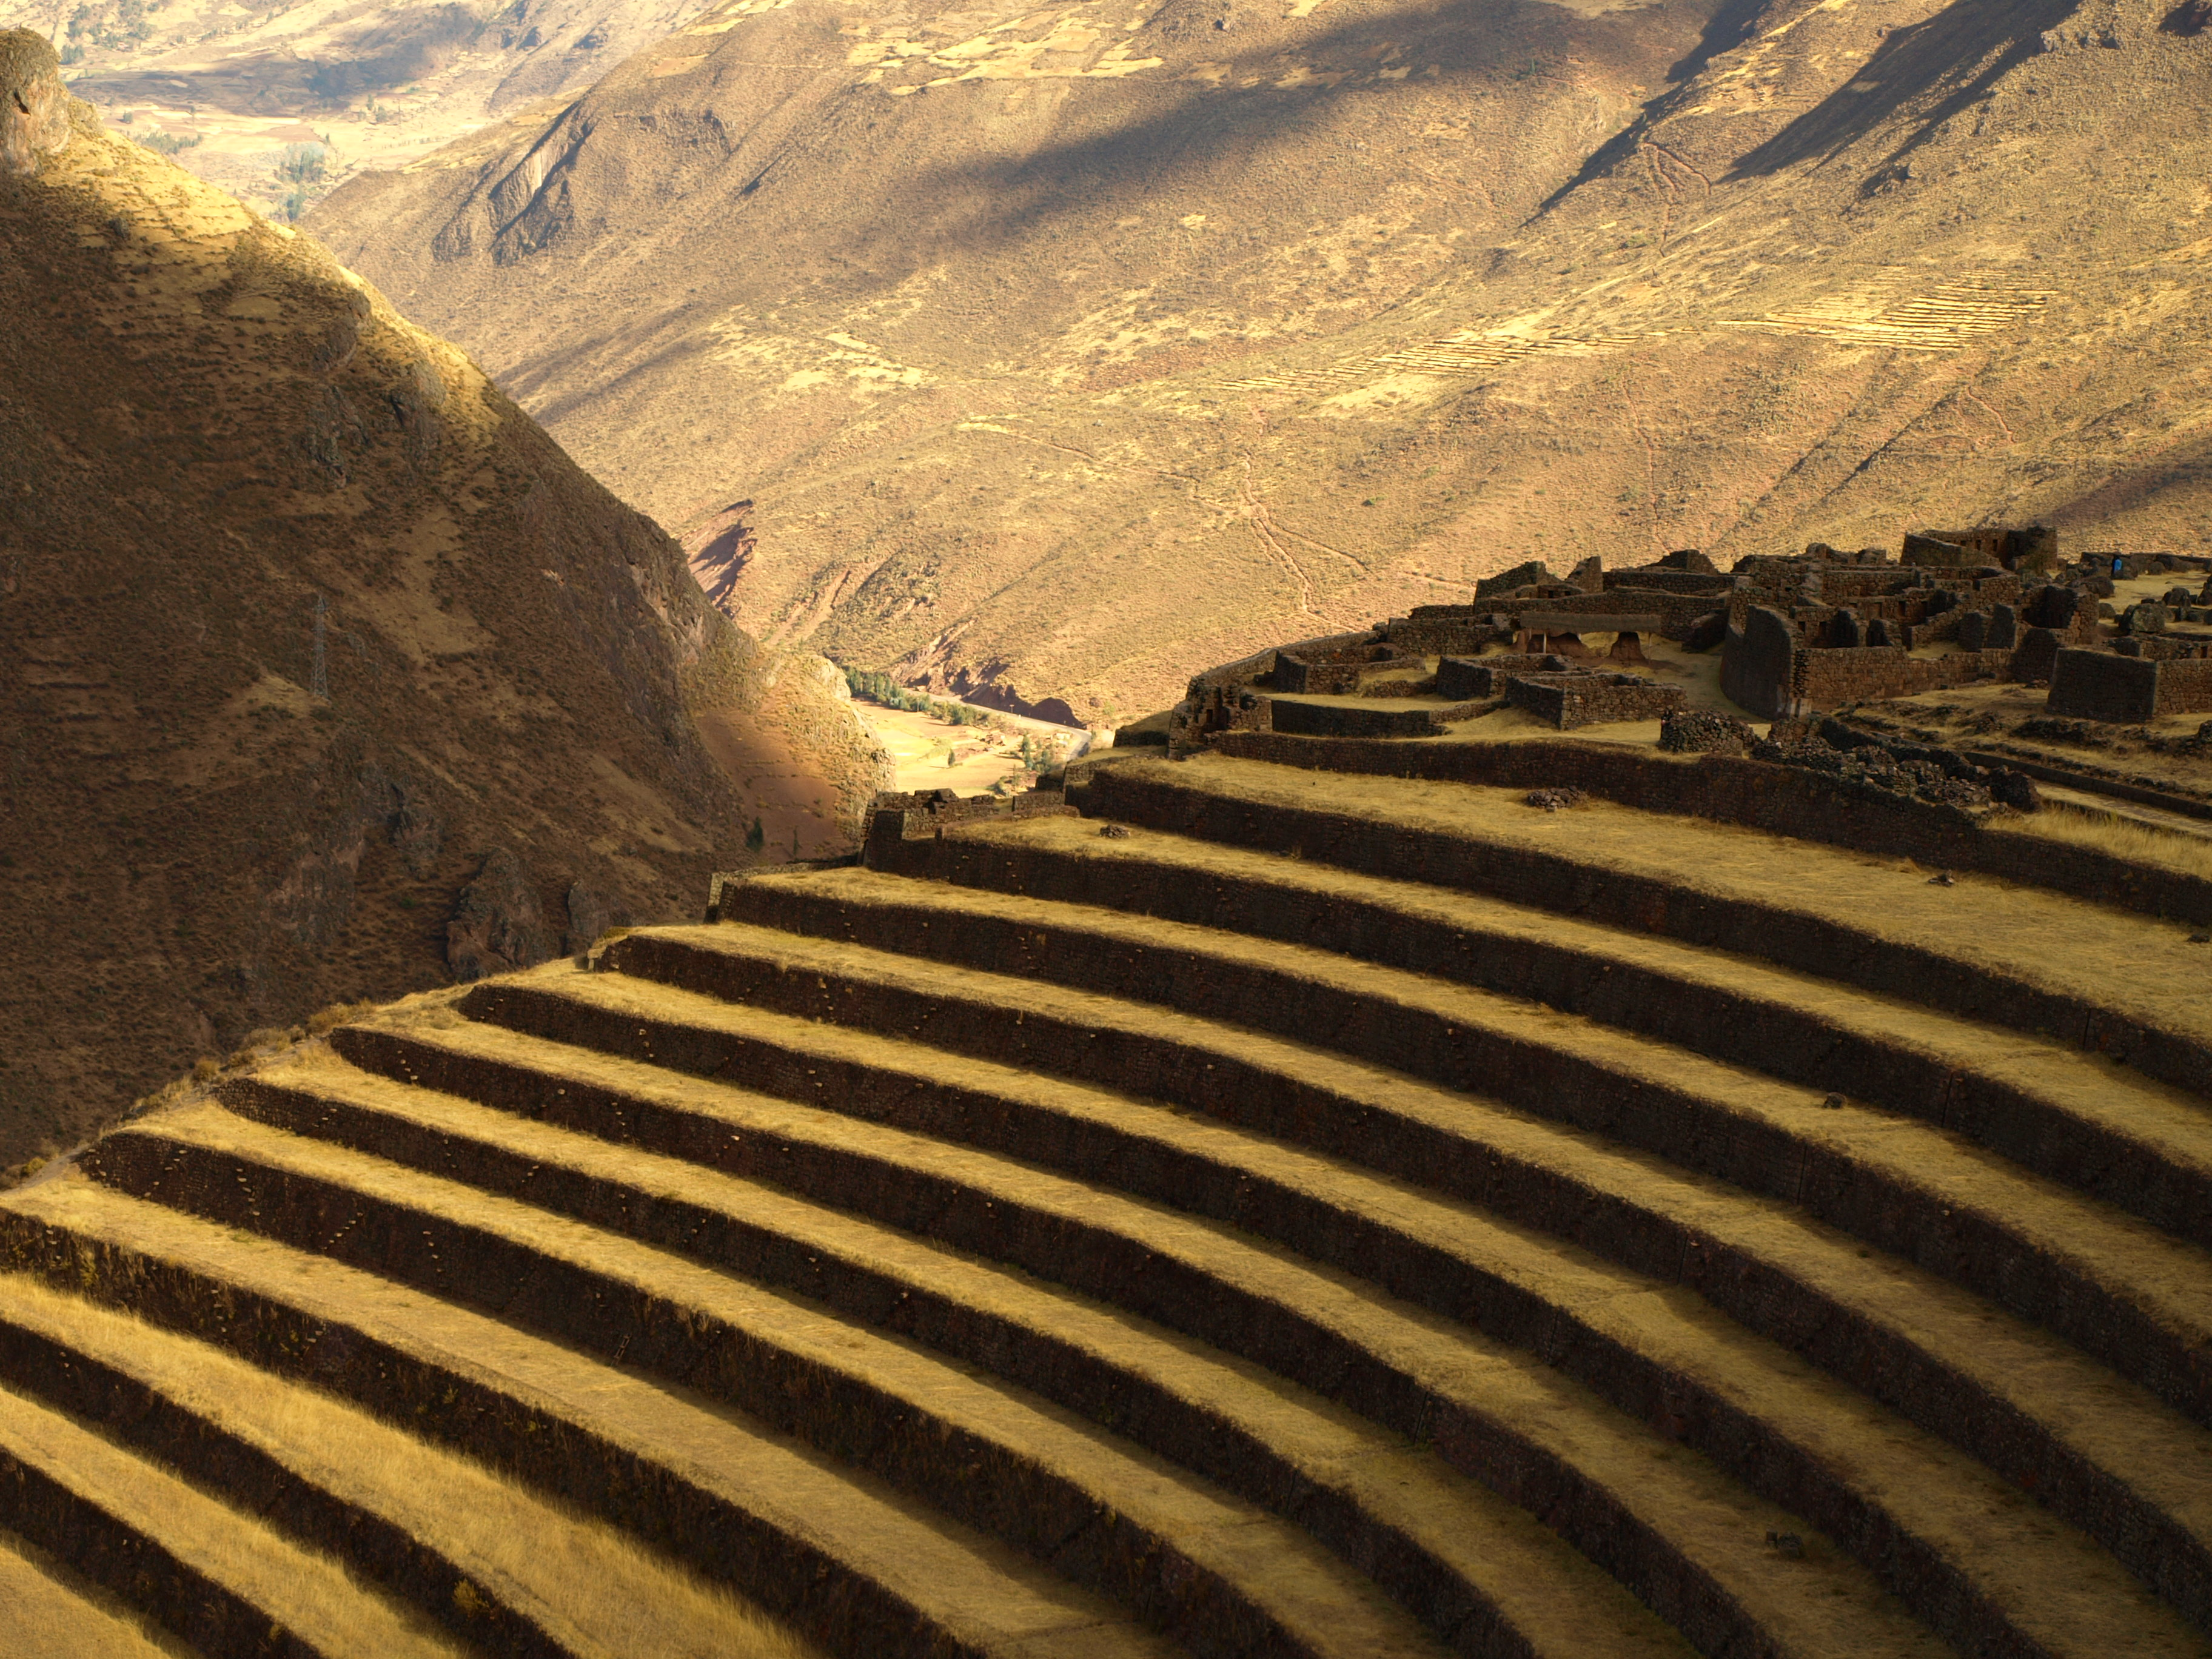 Explore the Sacred Valley